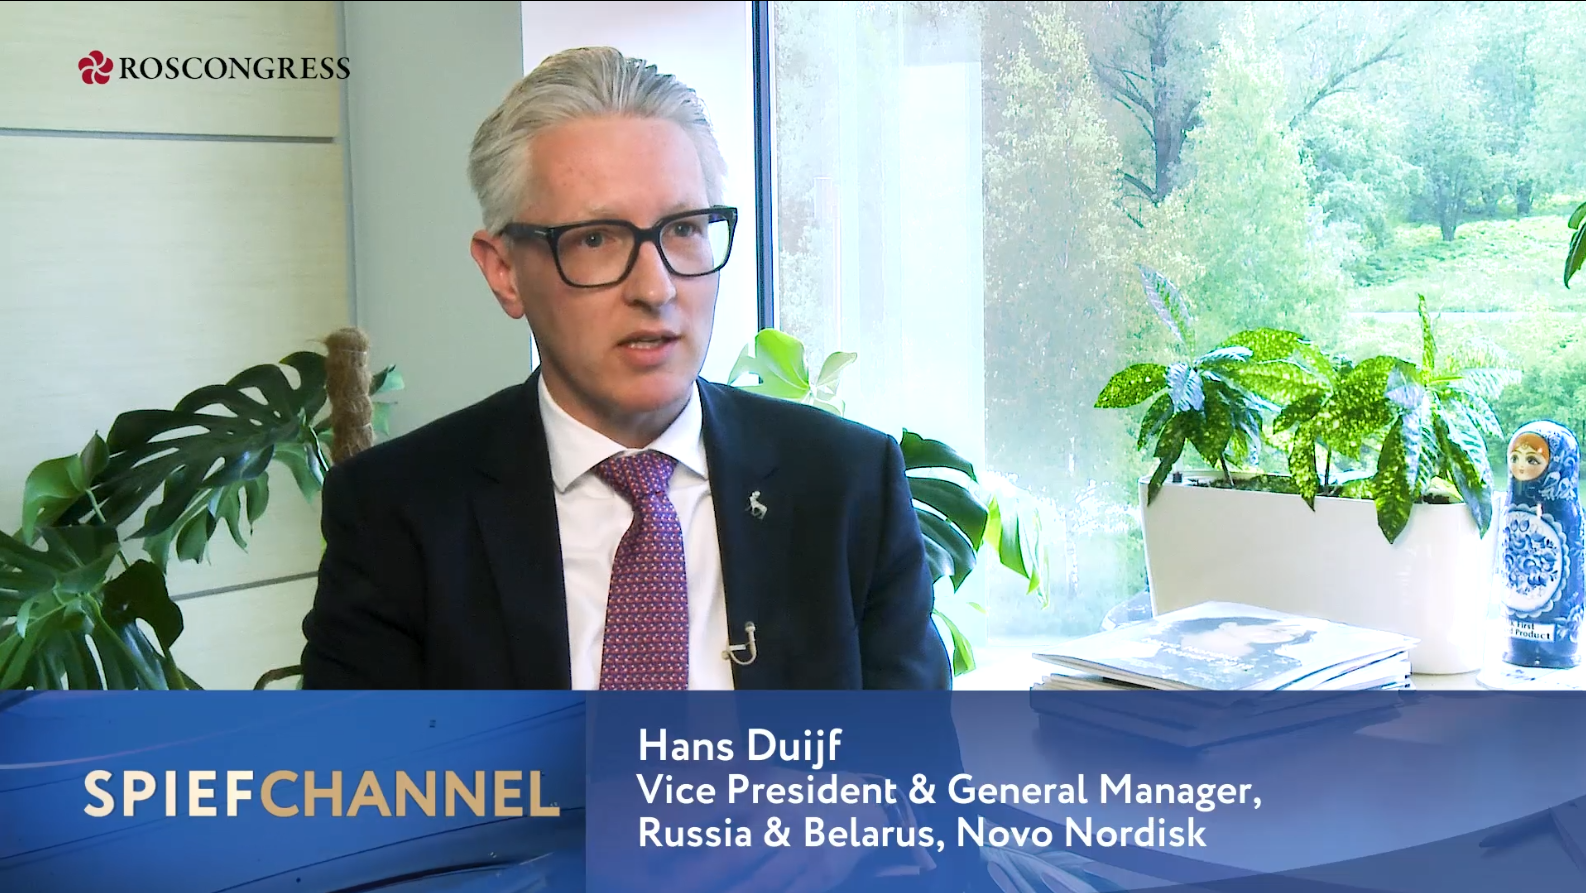 Hans Duijf, Vice President, Russia, Novo Nordisk